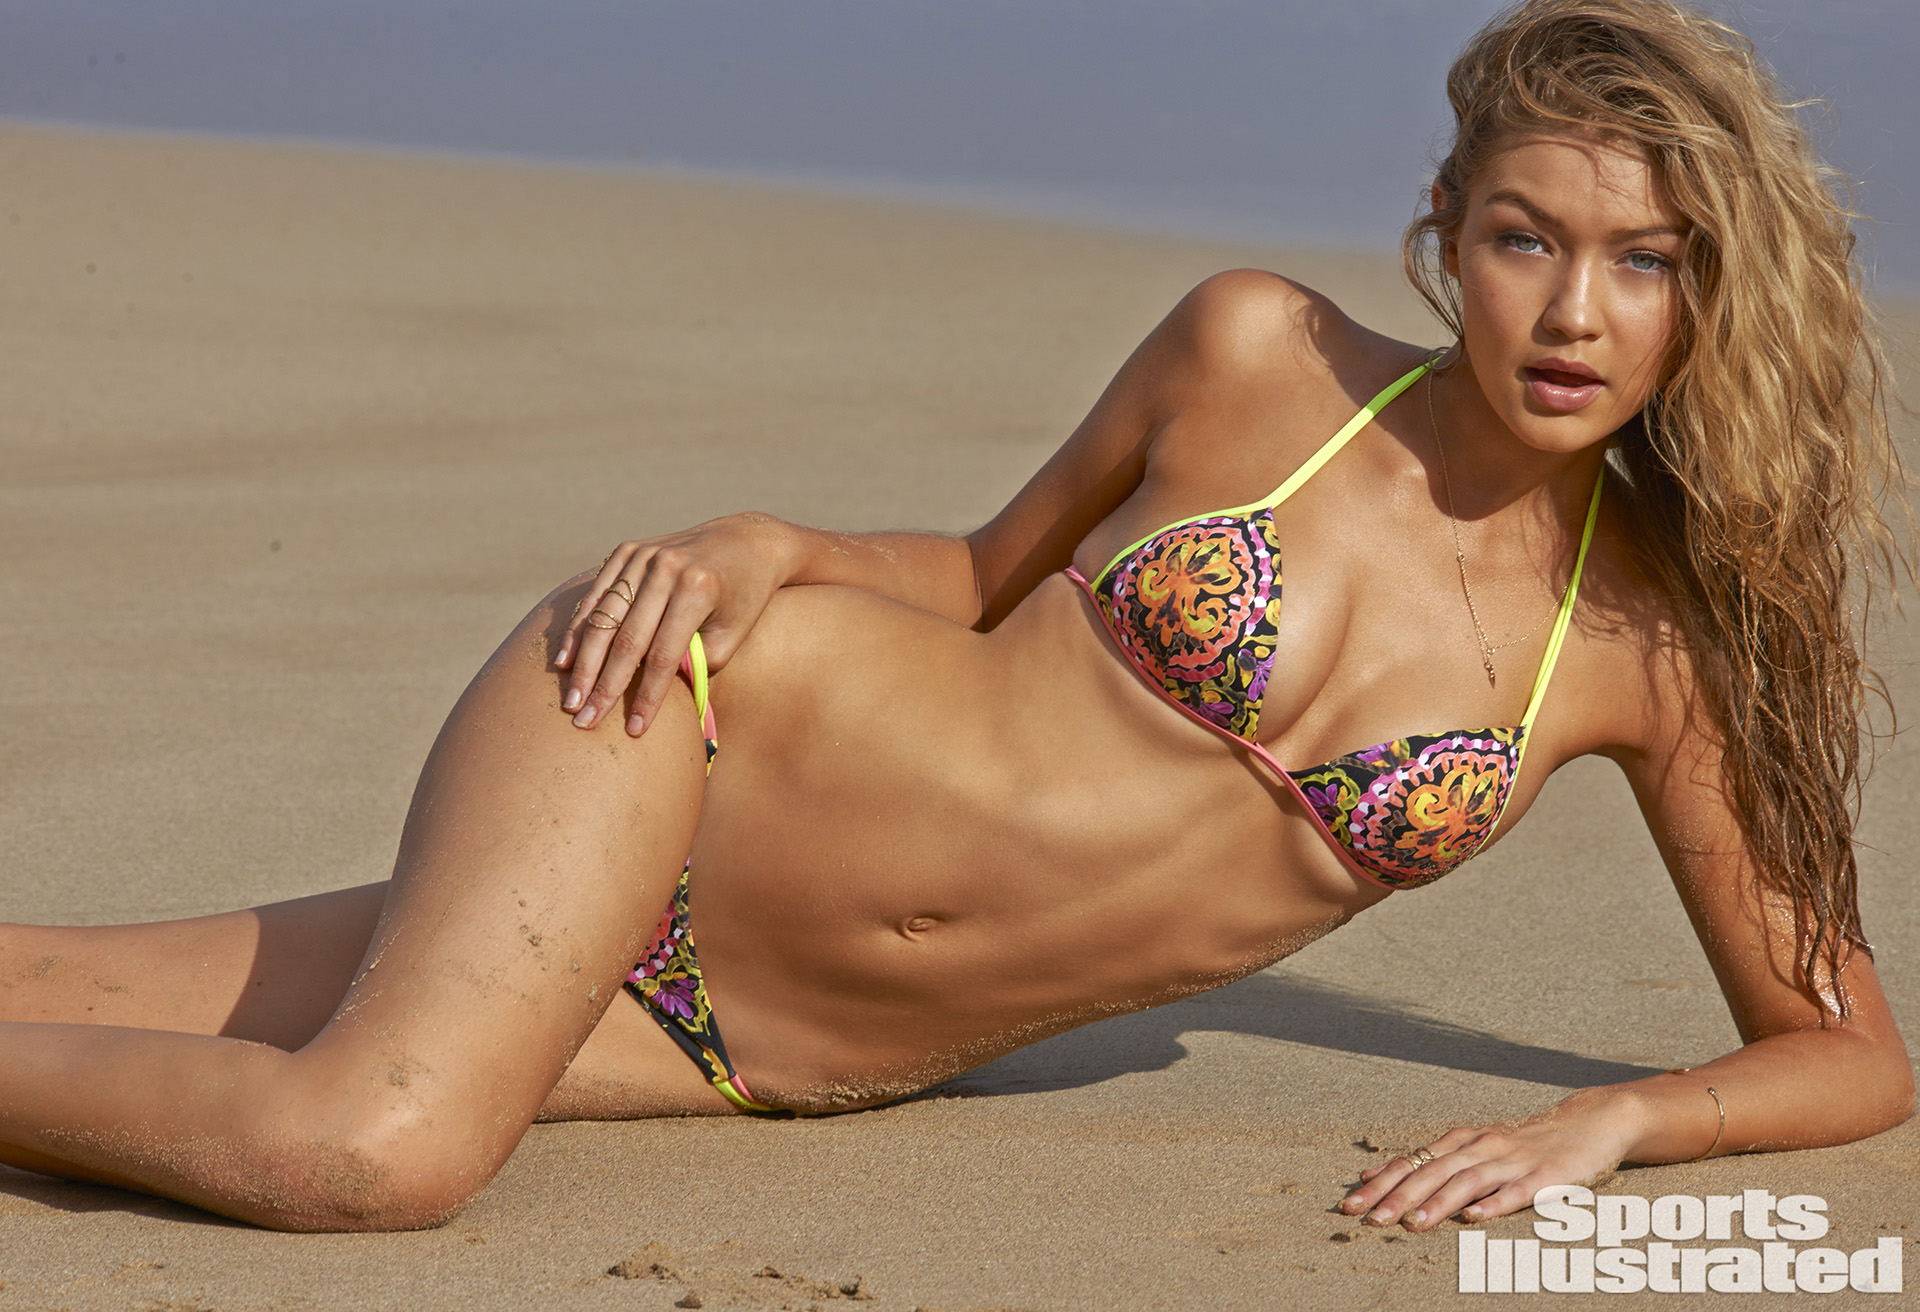 Charming idea gigi hadid sports illustrated nude